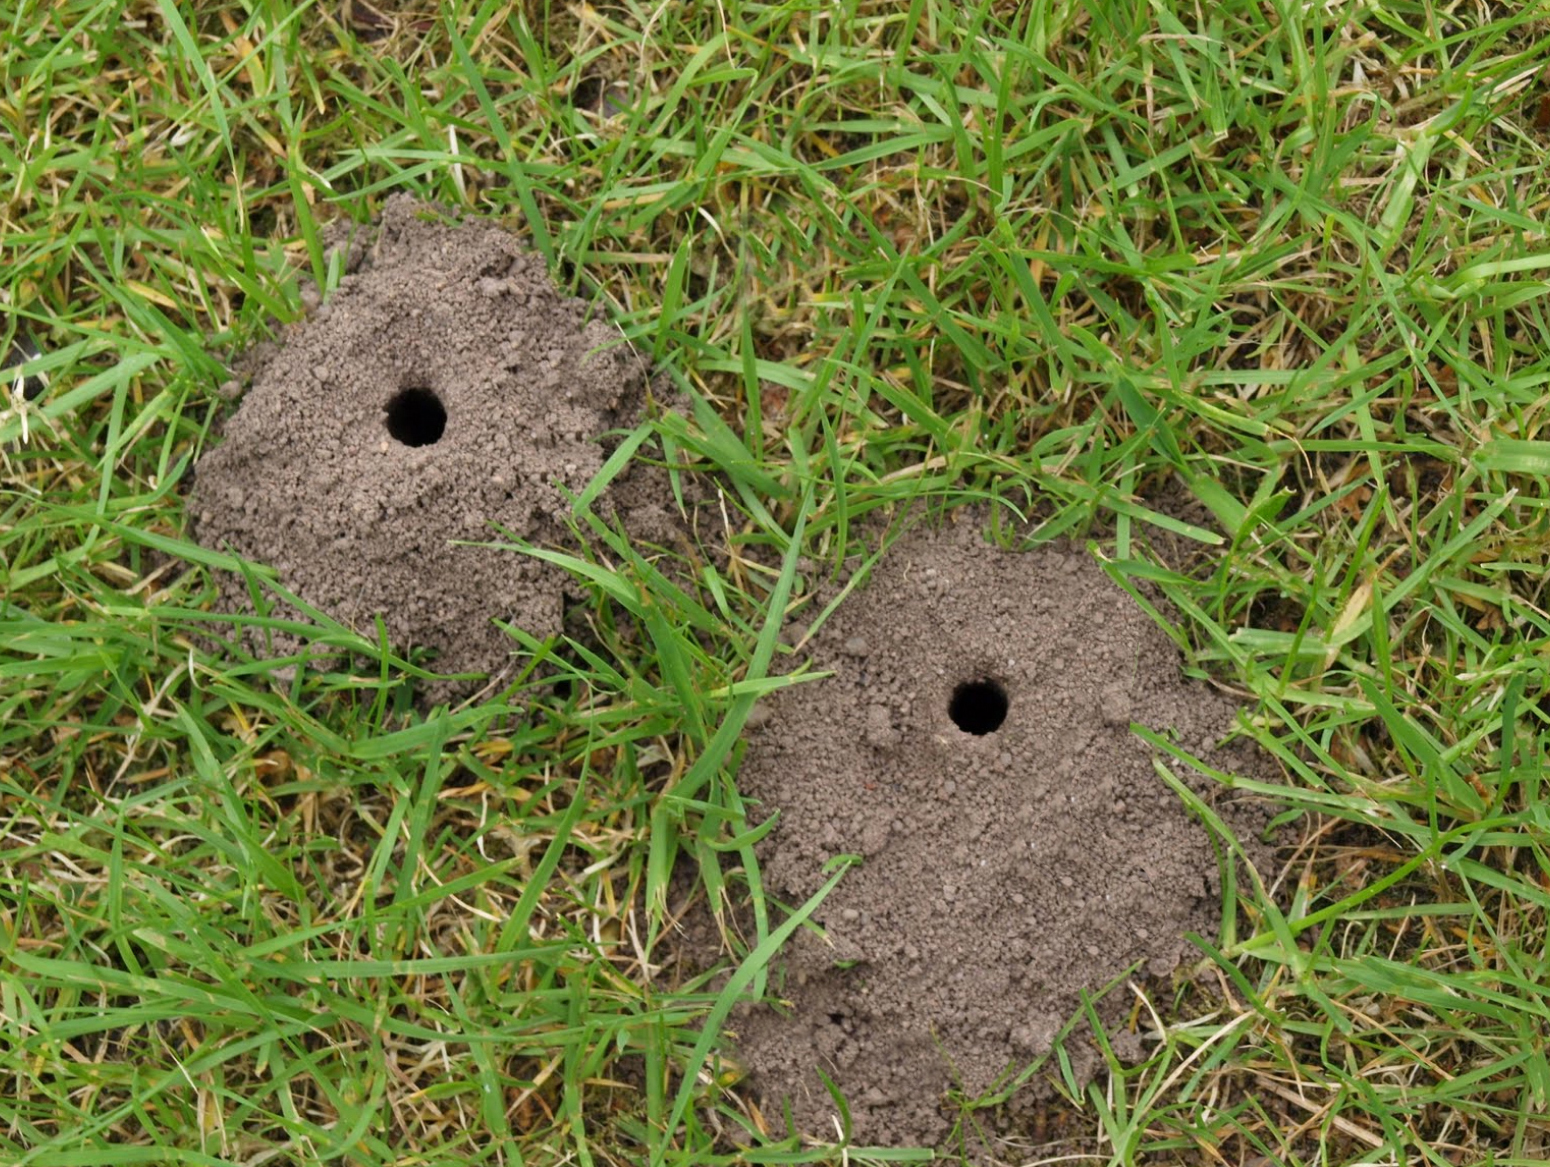 Leave an exposed area of soil   Roughly 70% of solitary bees are called mining bees and nest in underground burrows up to 60cm deep. These burrows are often marked by small mounds of excavated soil. Do your bit for the bees by leaving an area of your lawn bare, or building a mound of sandy soil in a border or plant pot.